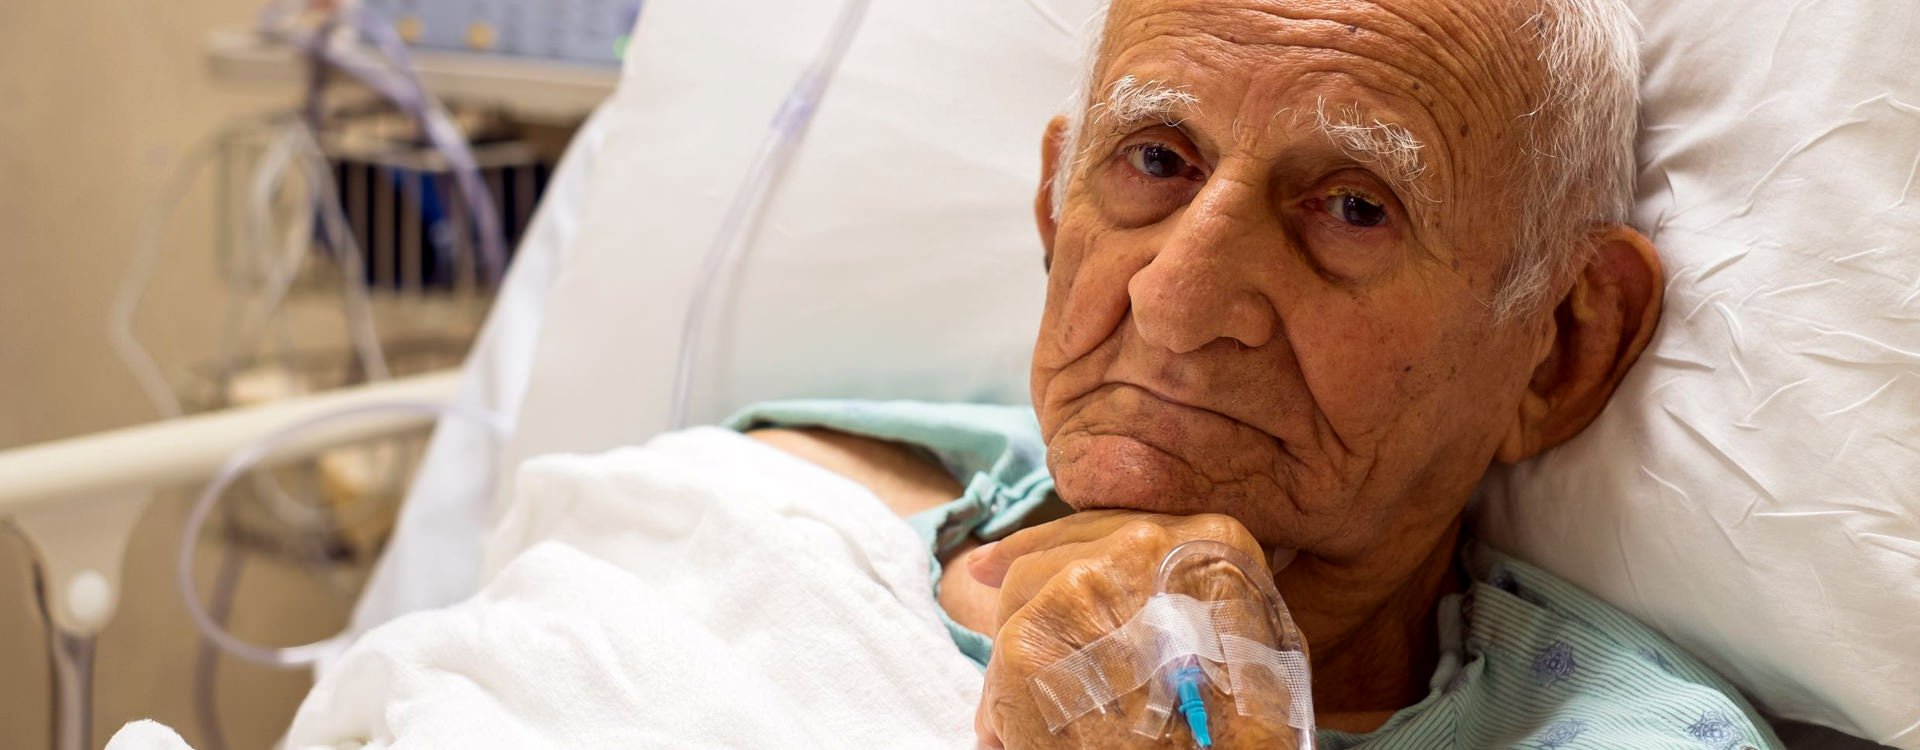 application for accreditation aged care